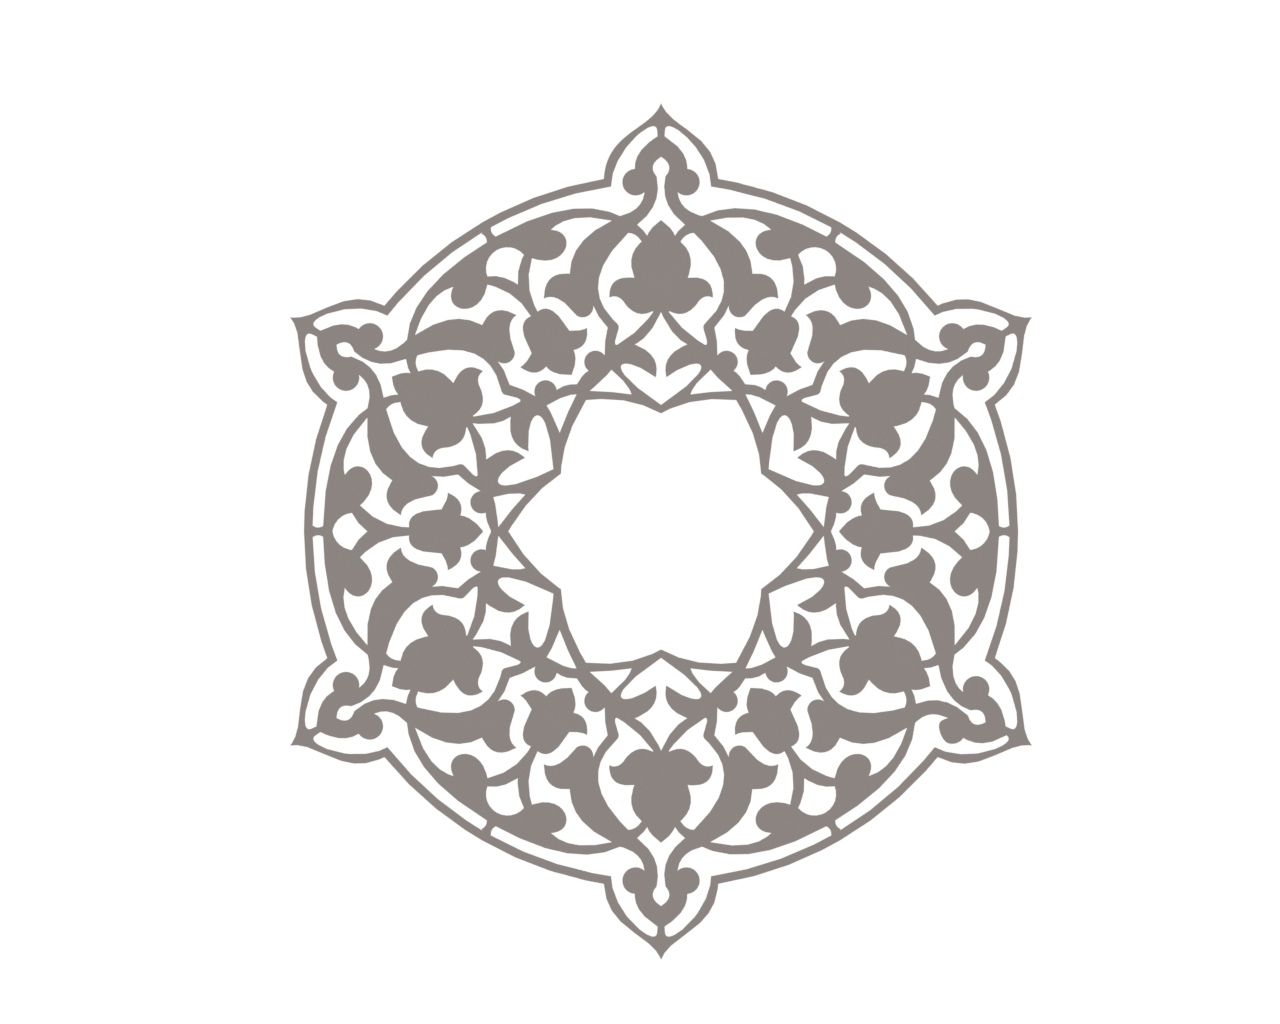 Circular Pattern In The Form Of A Mandala CDR File